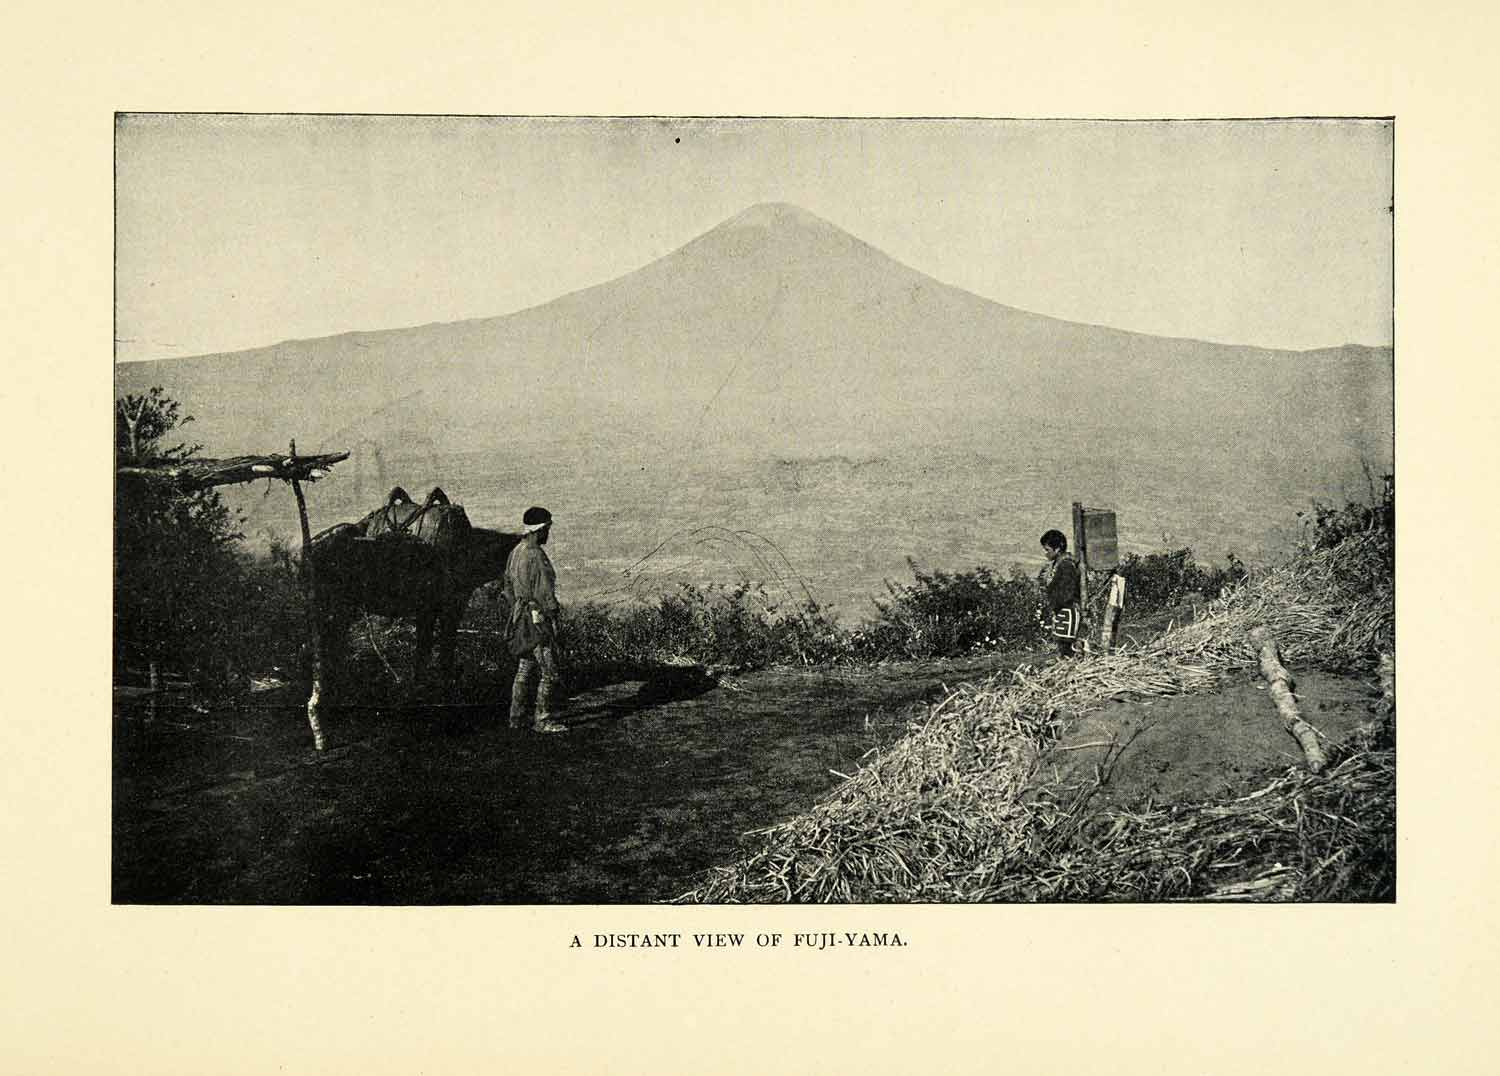 1900 Print Mount Fuji-Yama Japan Workers Horse Scenery Distant Natives XGN4